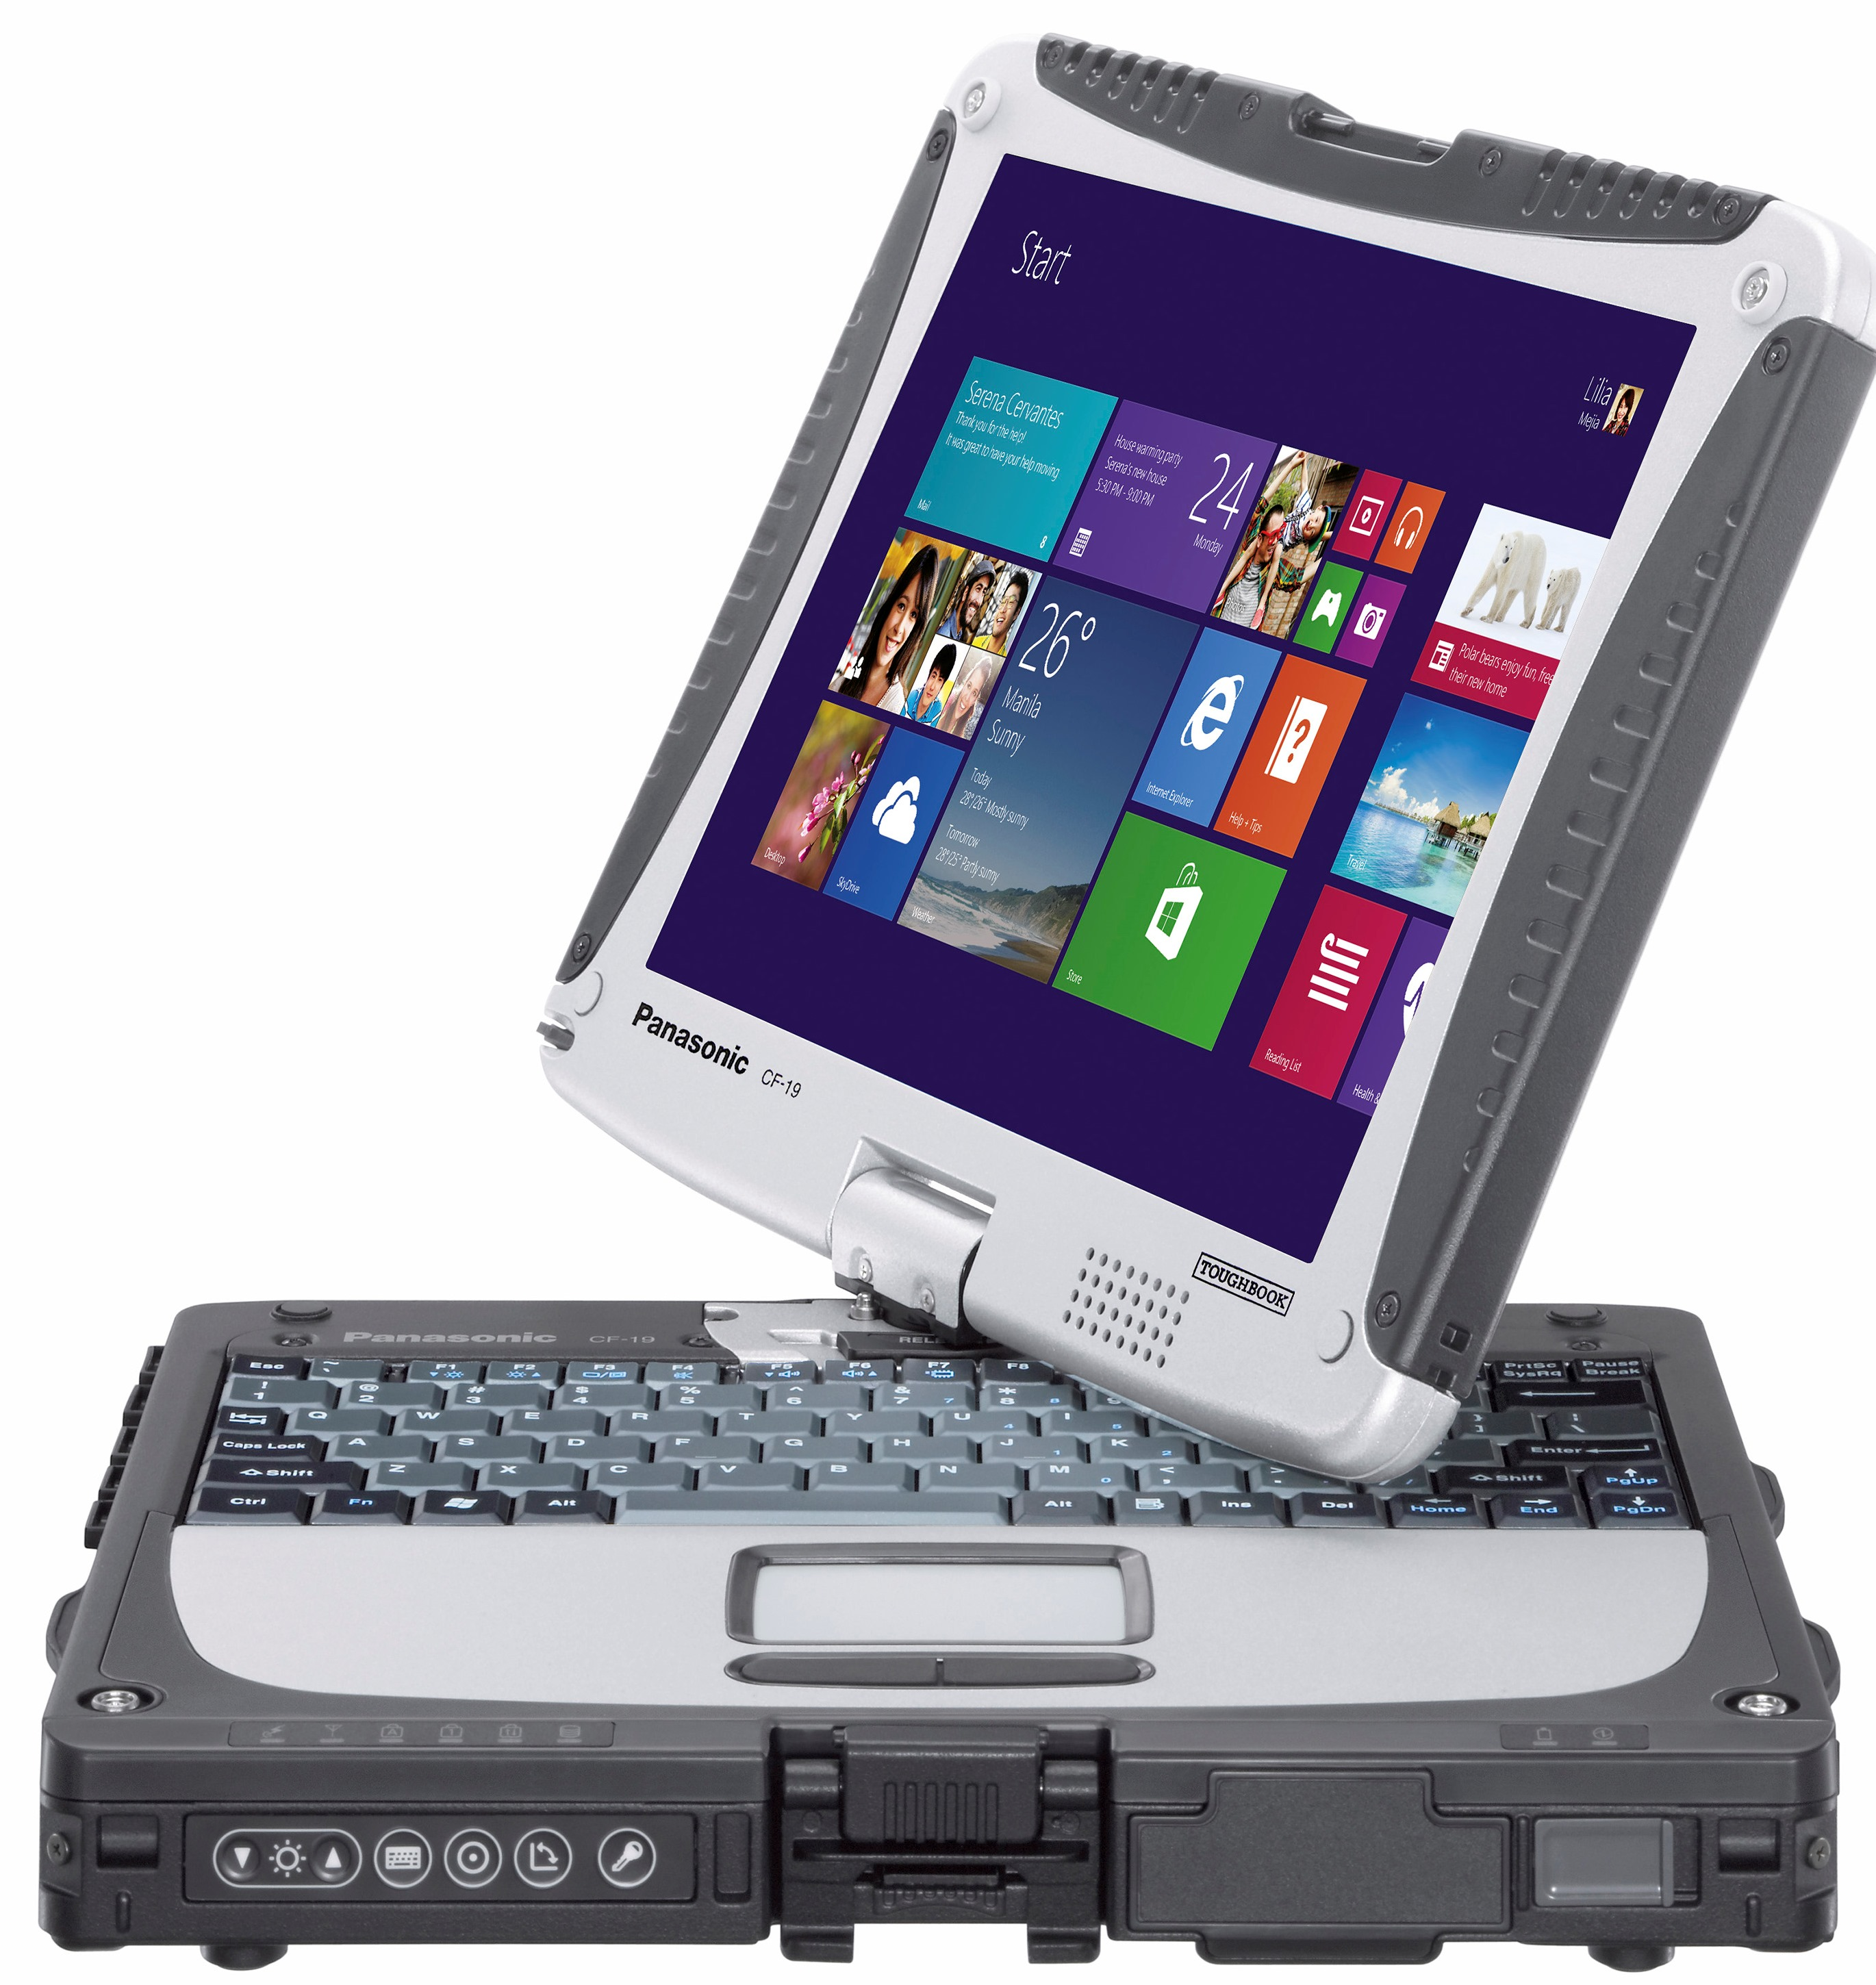 Panasonic Toughbook CF-19 MK7